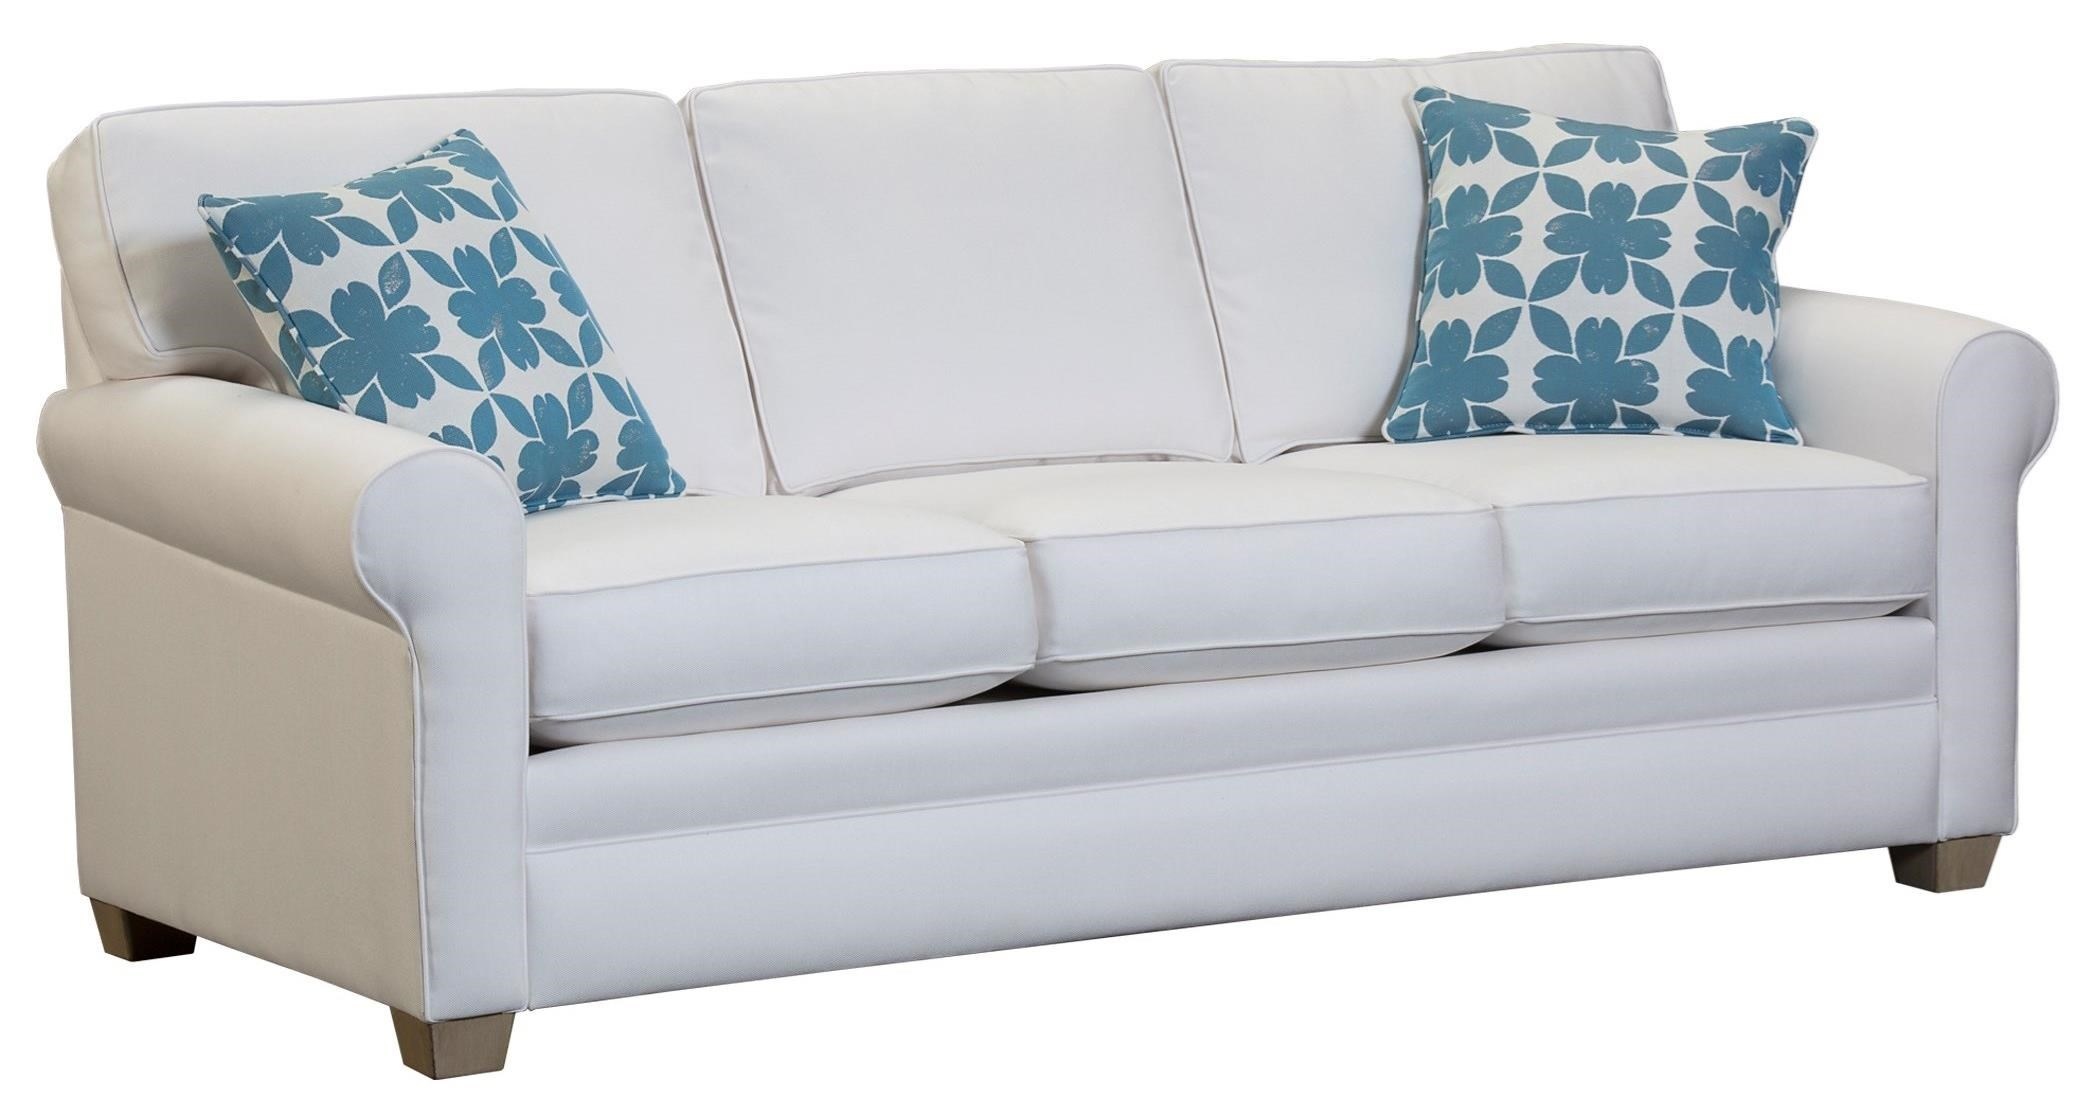 Capris Furniture 402 Casual Rolled Arm Sleeper Sofa Howell